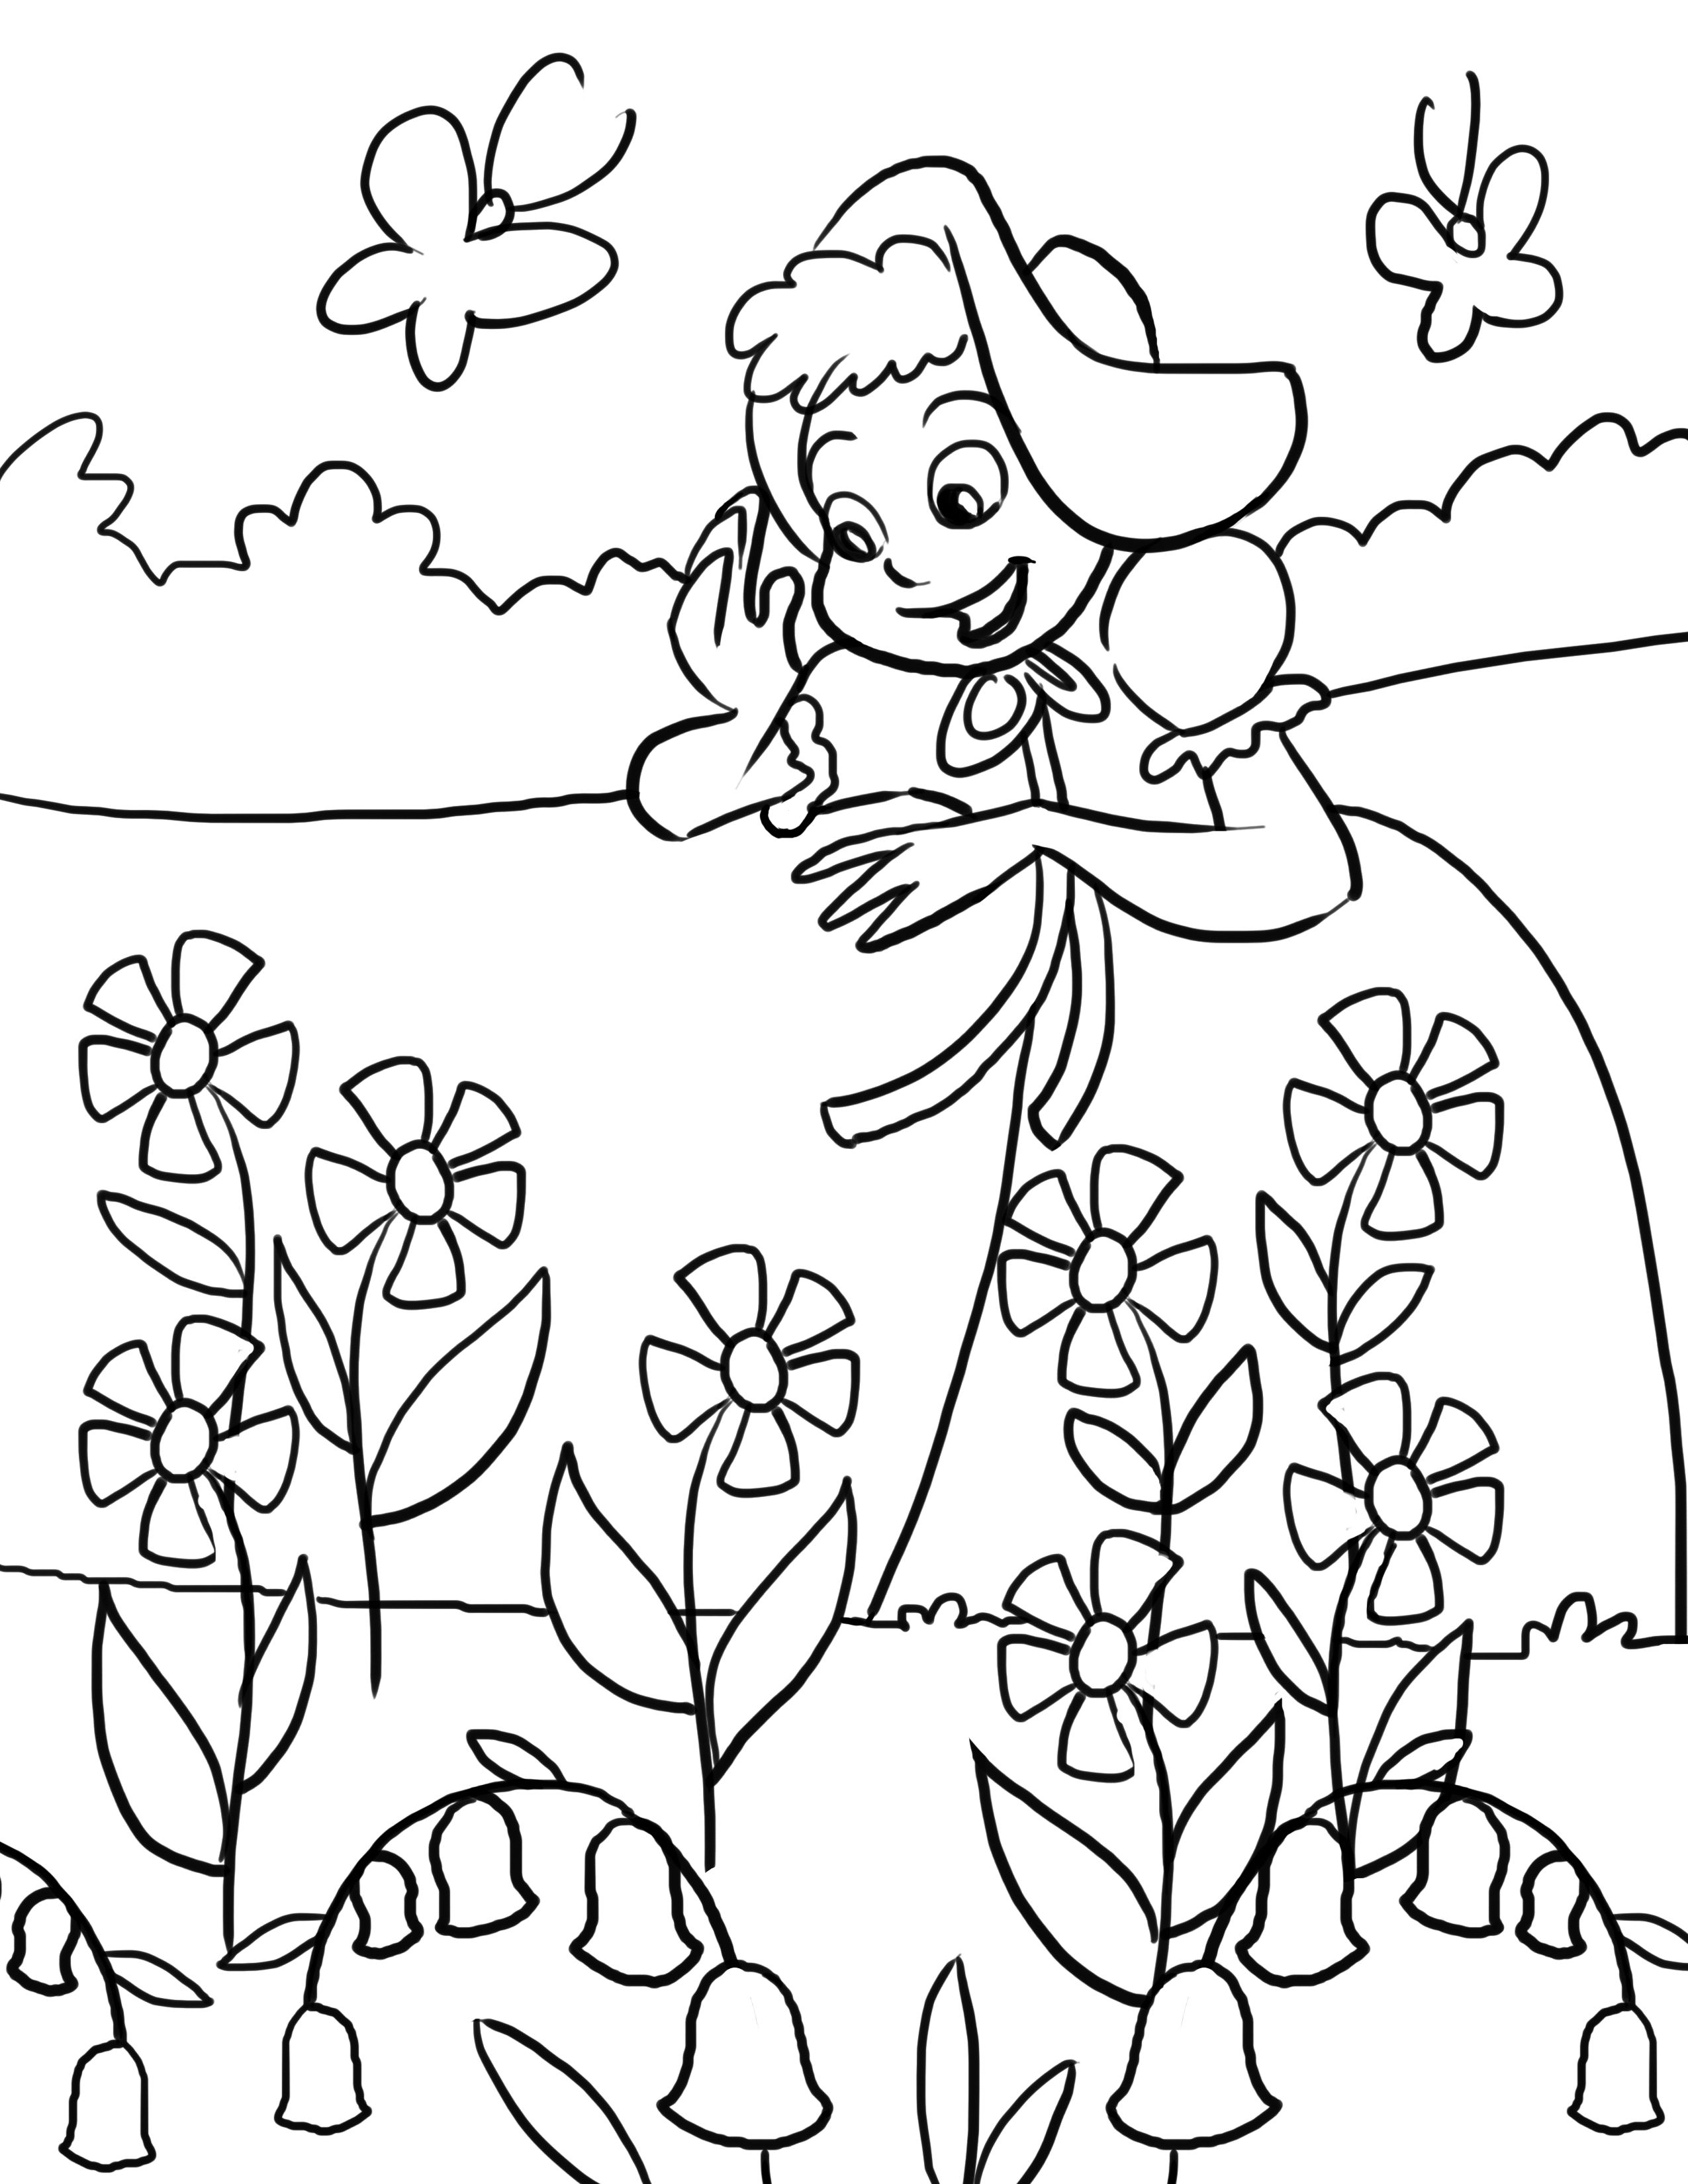 Mary Mary Quite Contrary Coloring Page